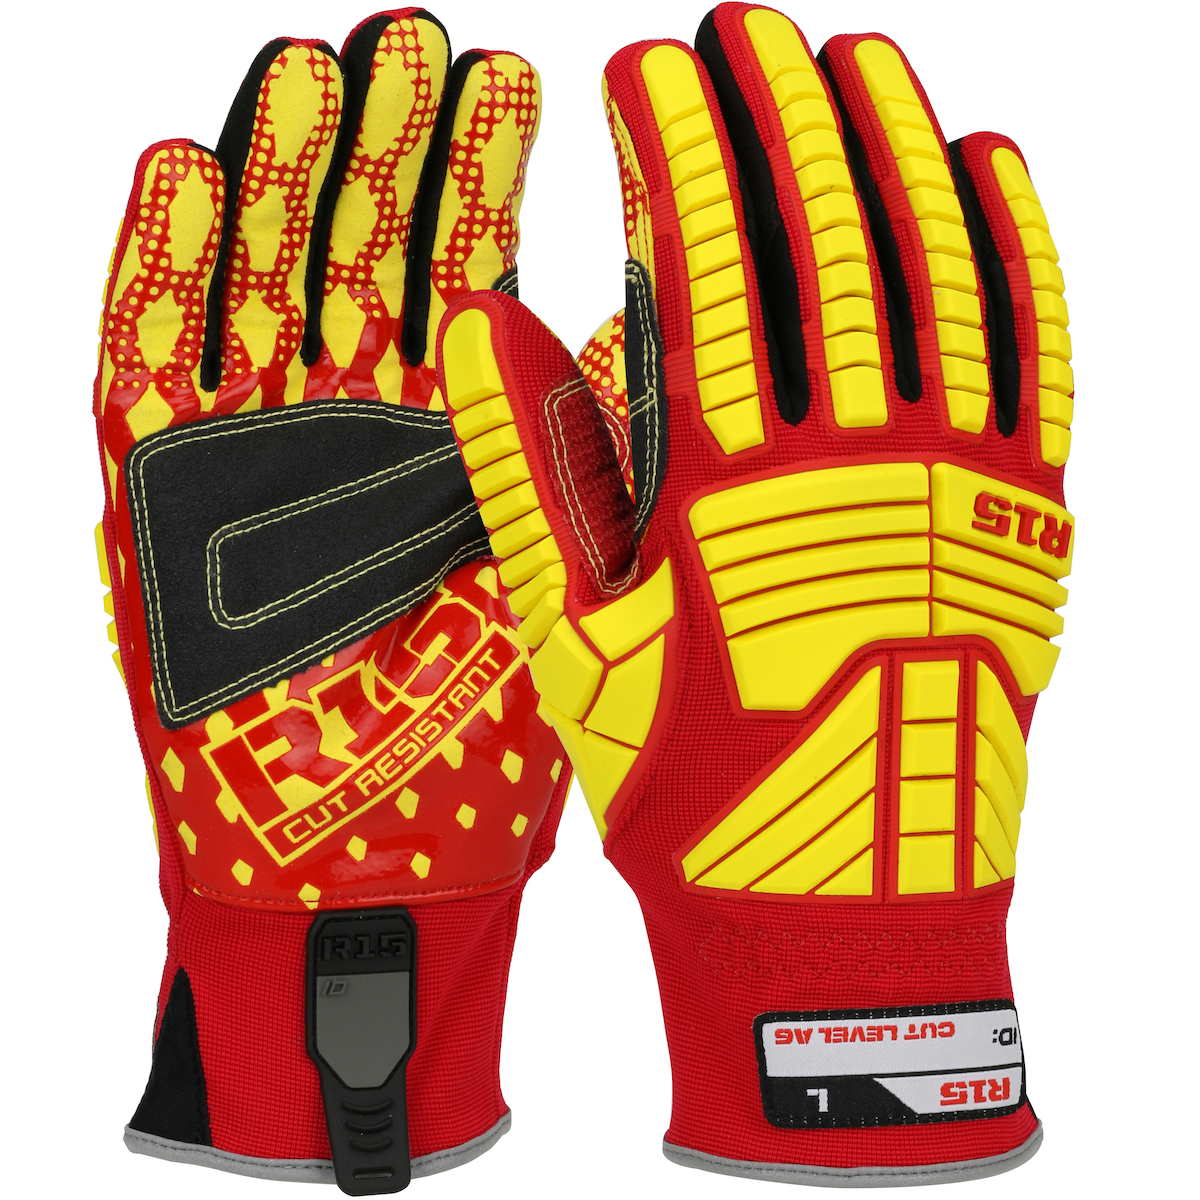 West Chester 87015/S 87015 R15™ Rigger Gloves, Small, Synthetic Leather, Red/Yellow, Band Top Cuff